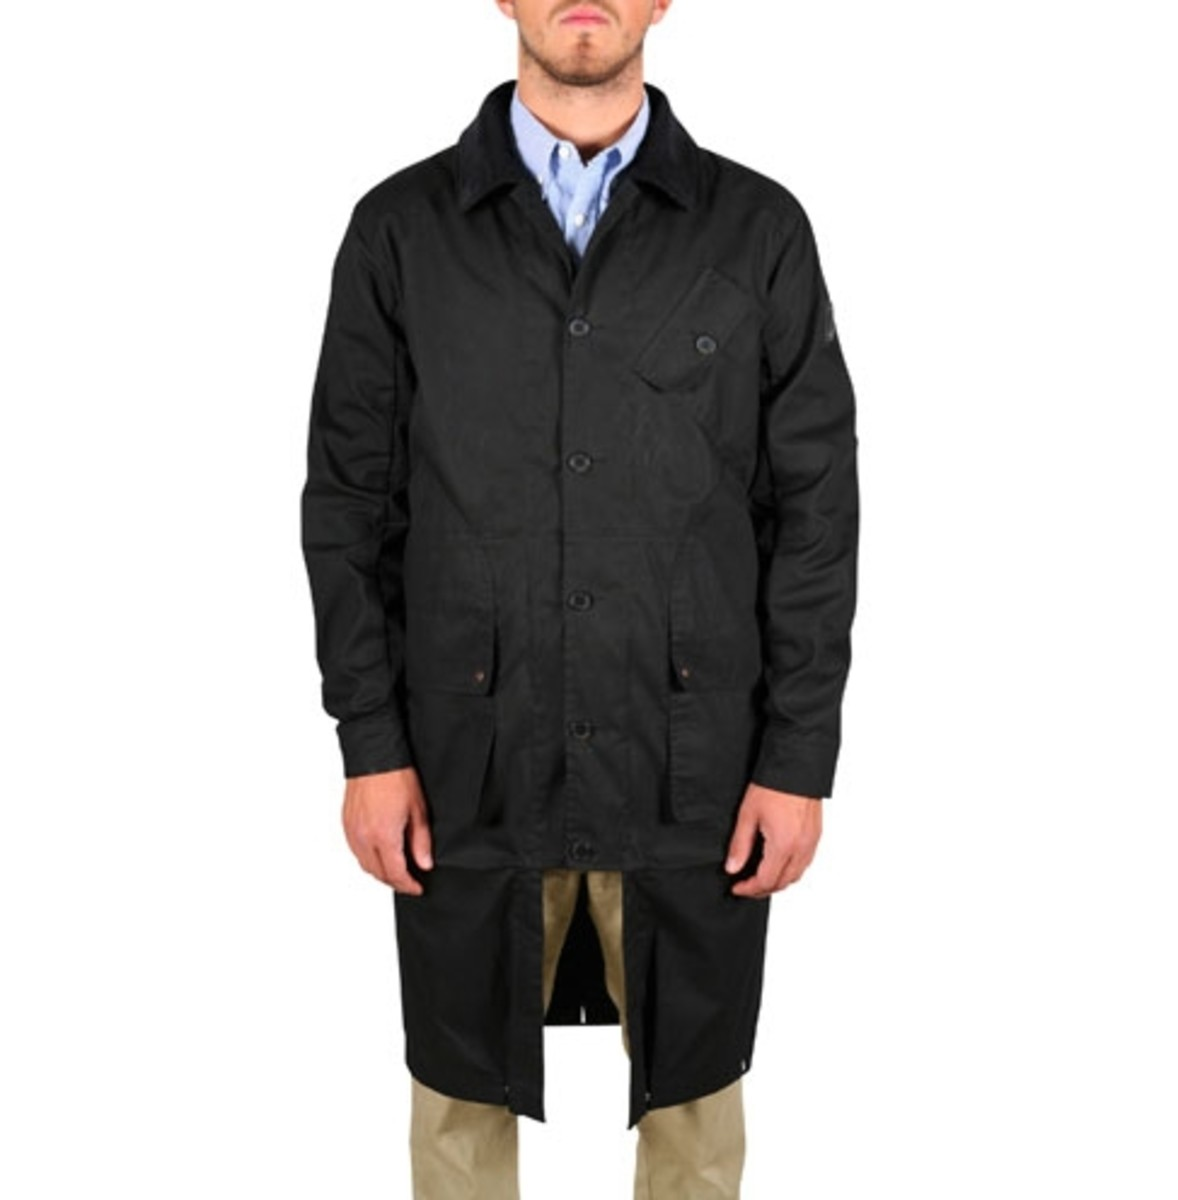 Penfield SS2011 Jackets 7